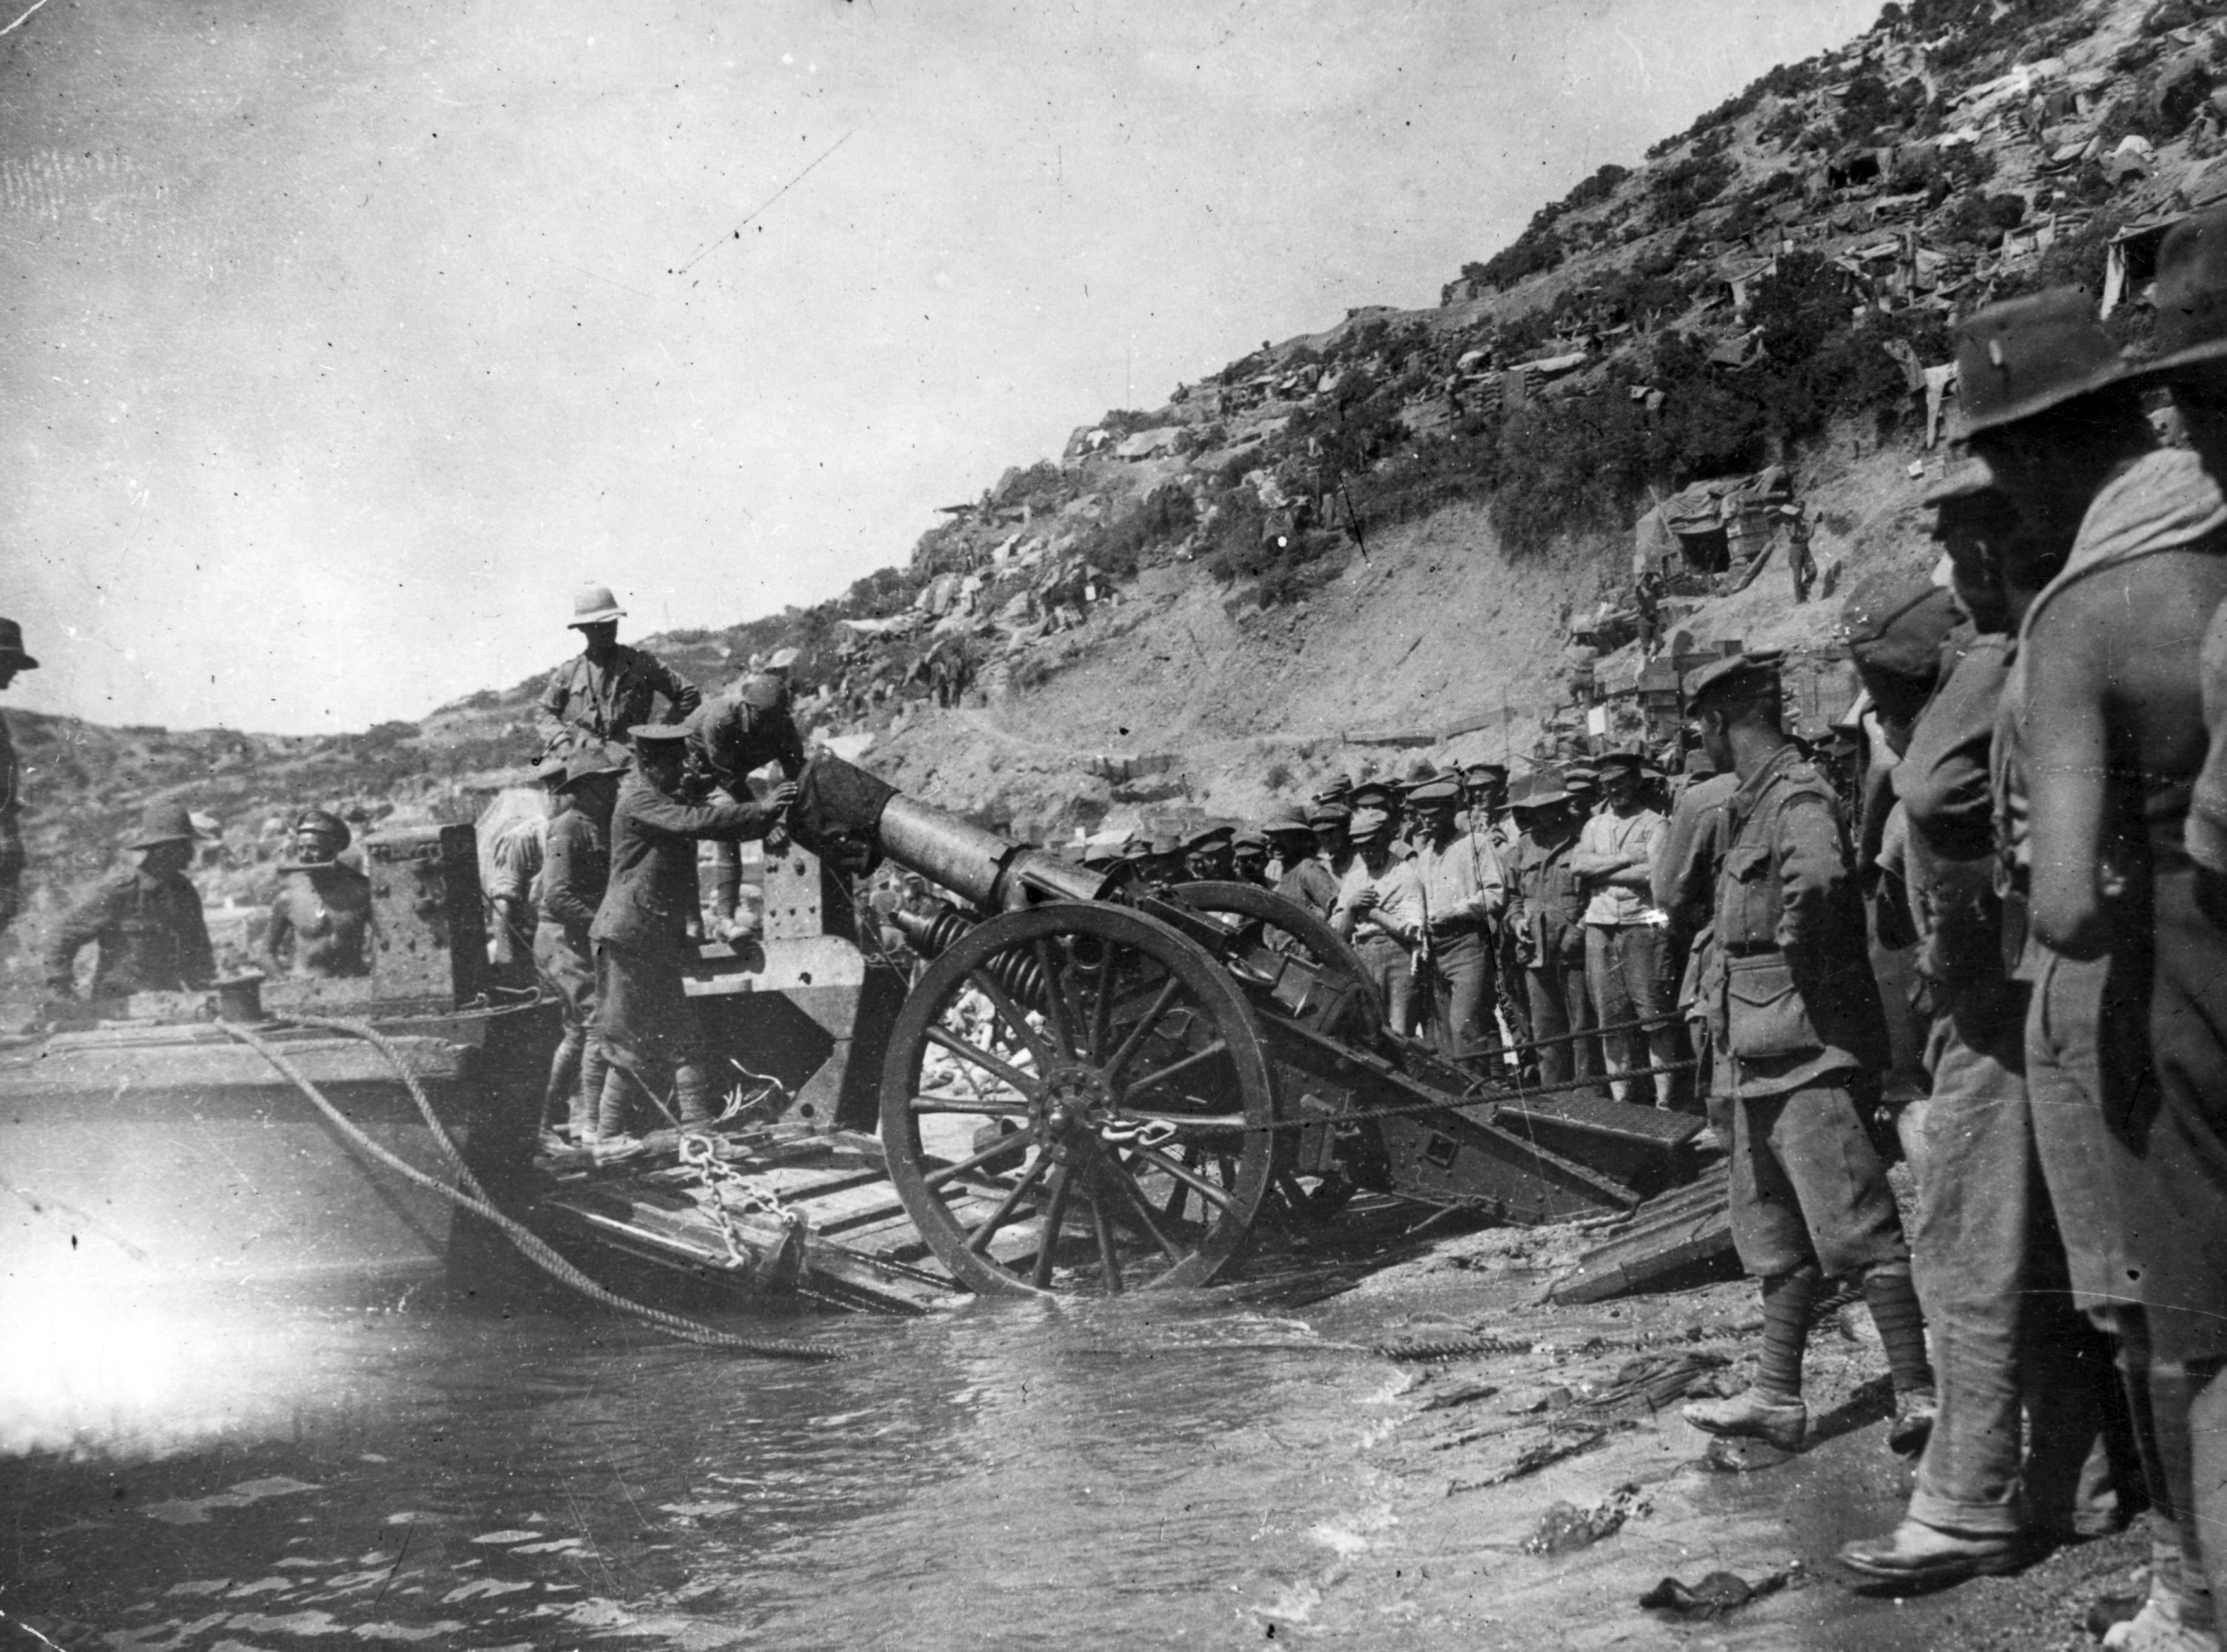 """Troops pictured during the Gallipoli campaign of the First World War. The attempt by the allies to seize the Gallipoli peninsula """"failed in a welter of hubris, blood and suffering,"""" says Peter Hart. (Photo by Hulton Archive/Getty Images)"""